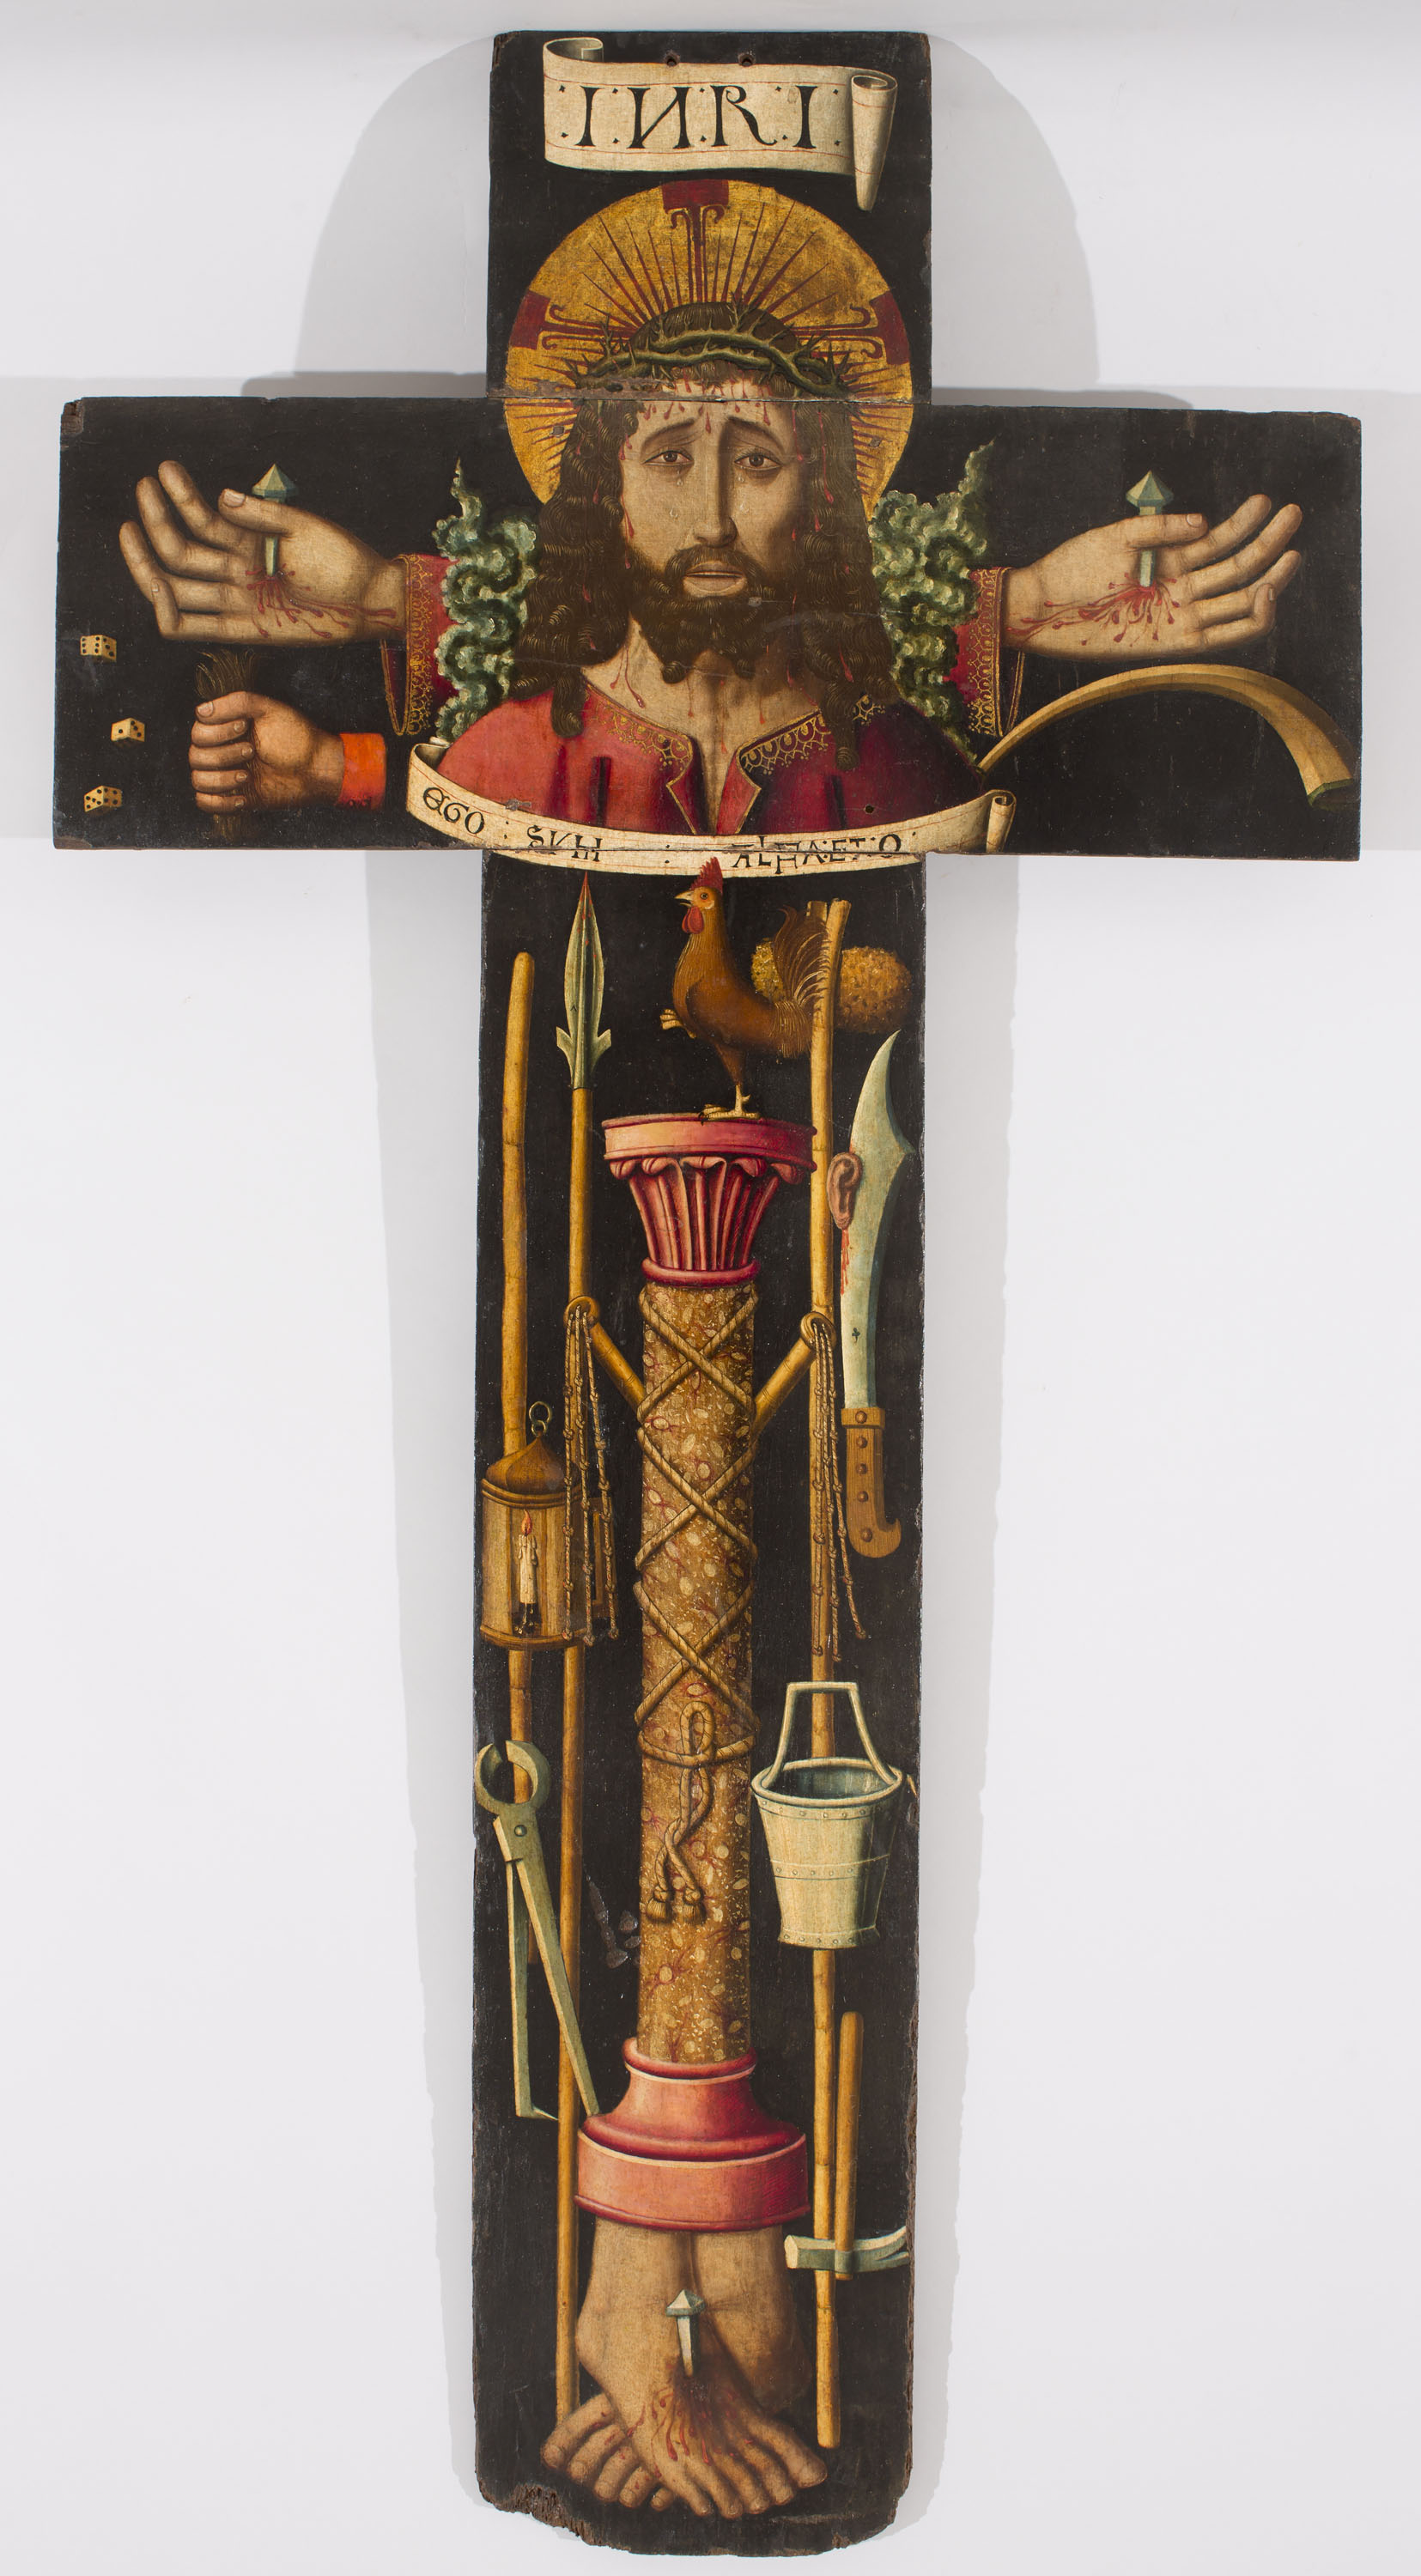 Martín Bernat - Processional cross with the bust of Christ and the Arma Christi - 1477-1505